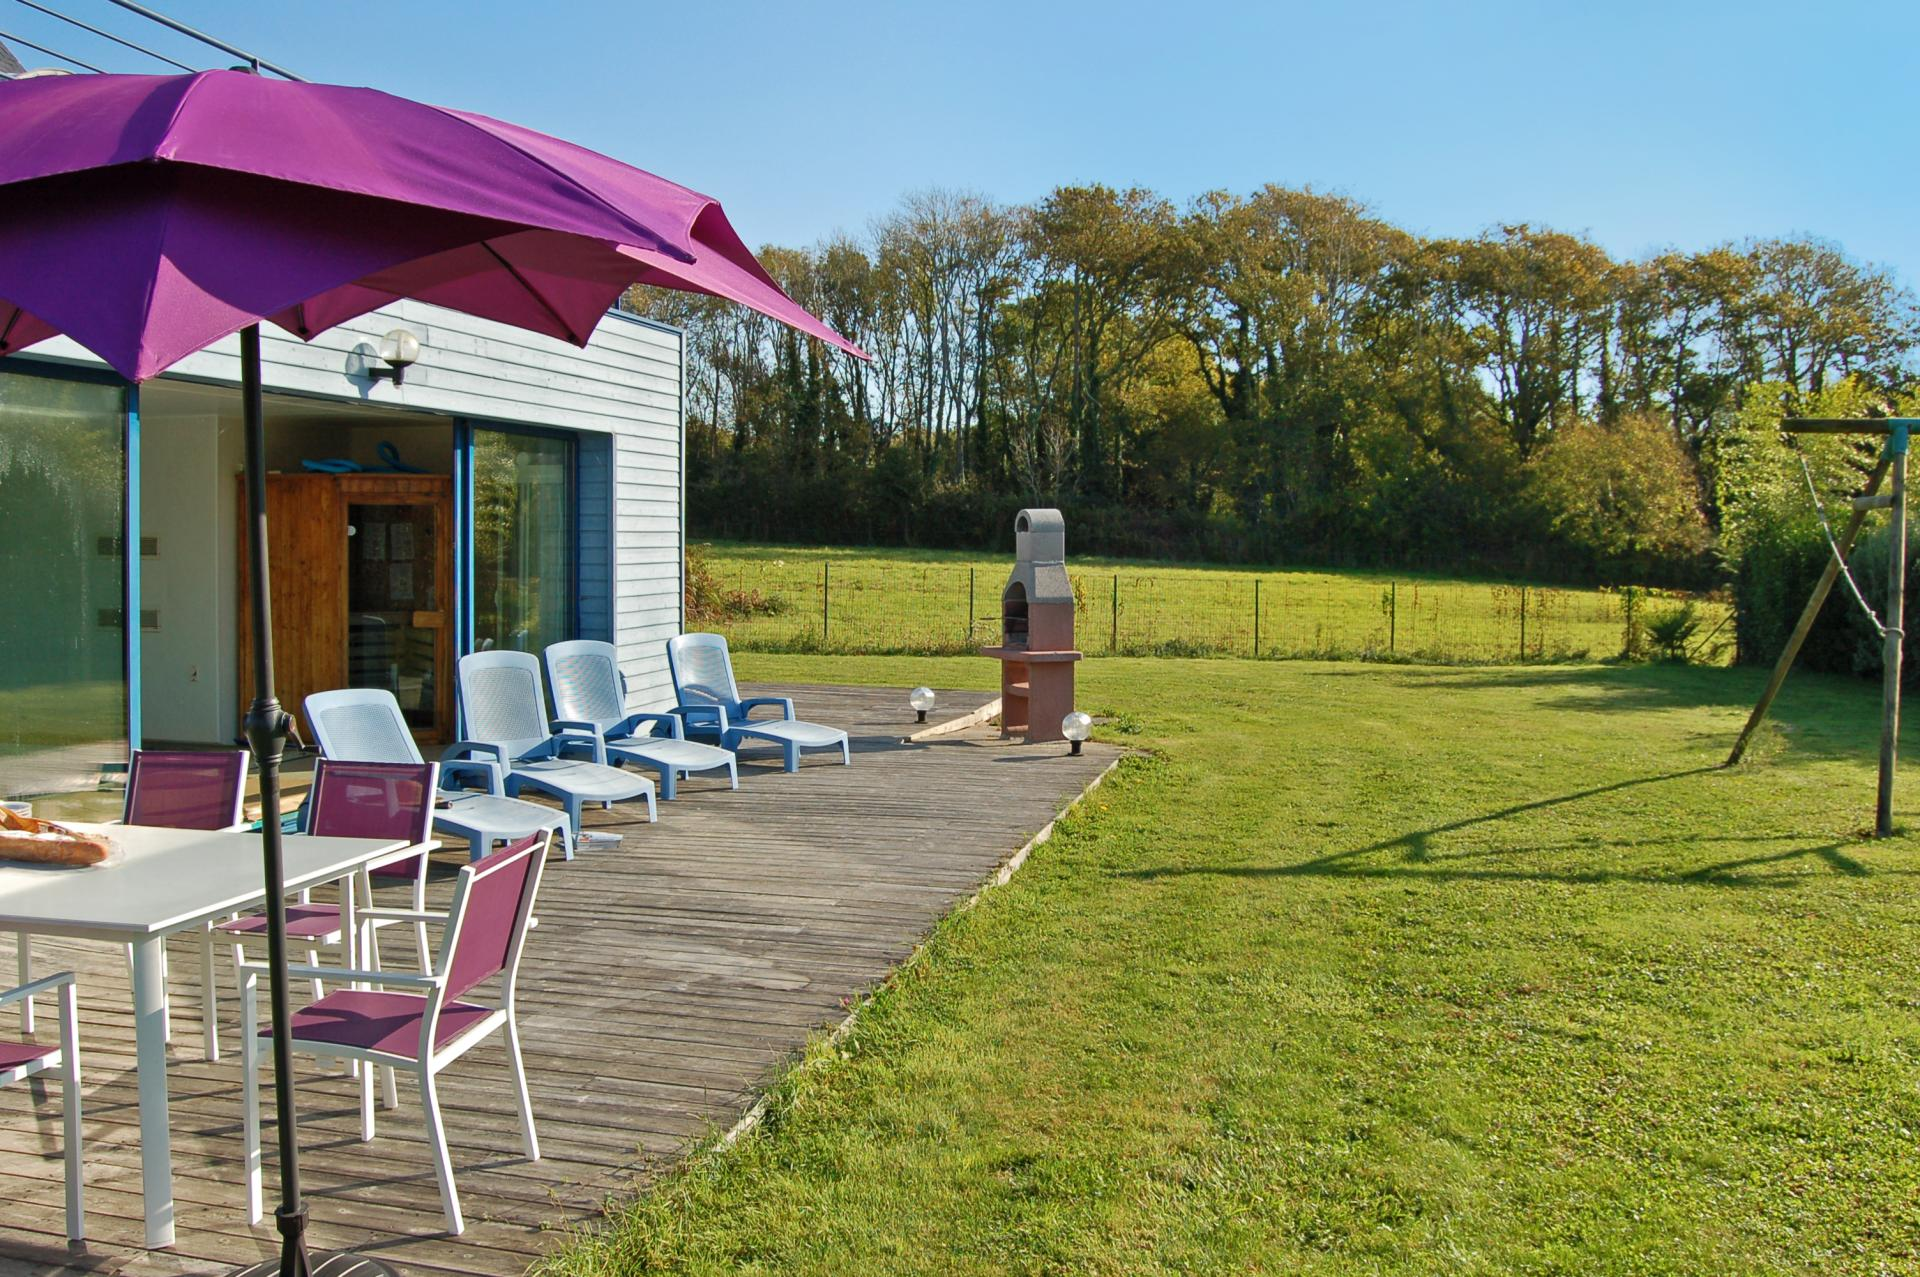 Sun loungers and table in garden, Annick, Brittany, Moelan-sur-mer.